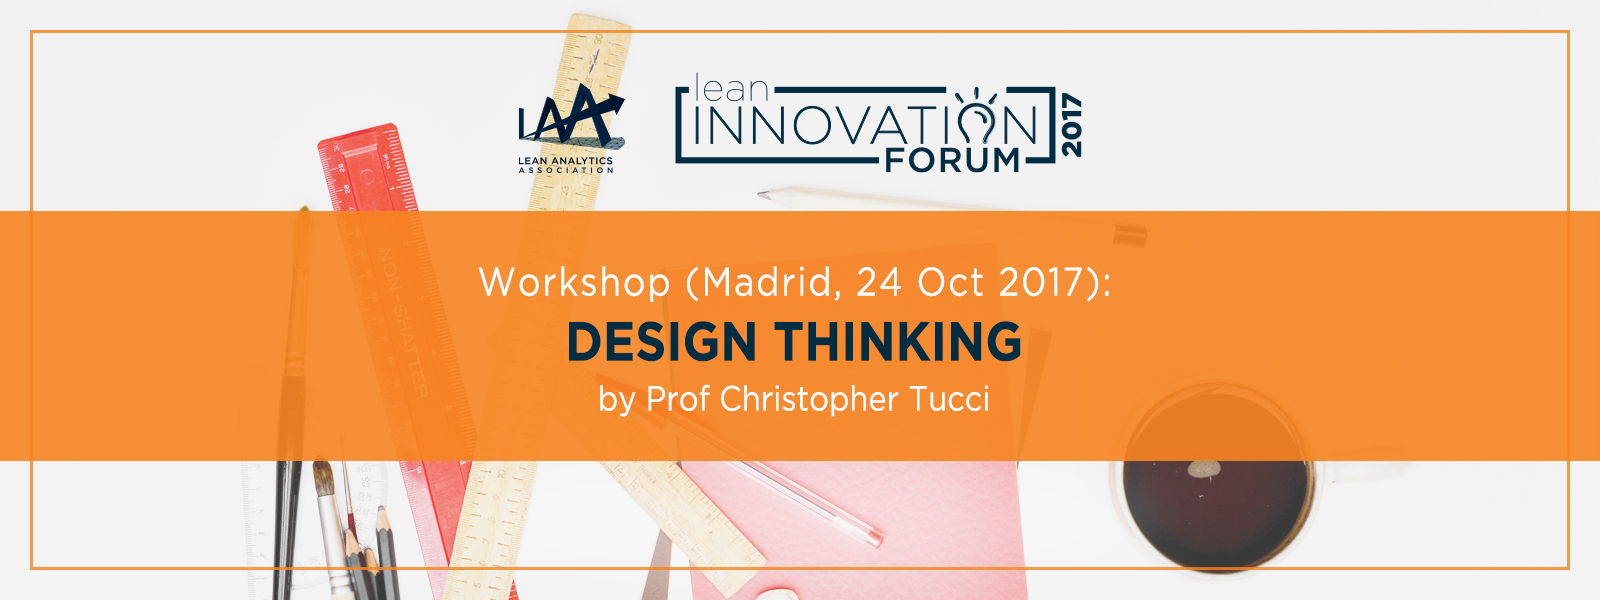 LAA-Blog - LiF2017 - Design Thinking